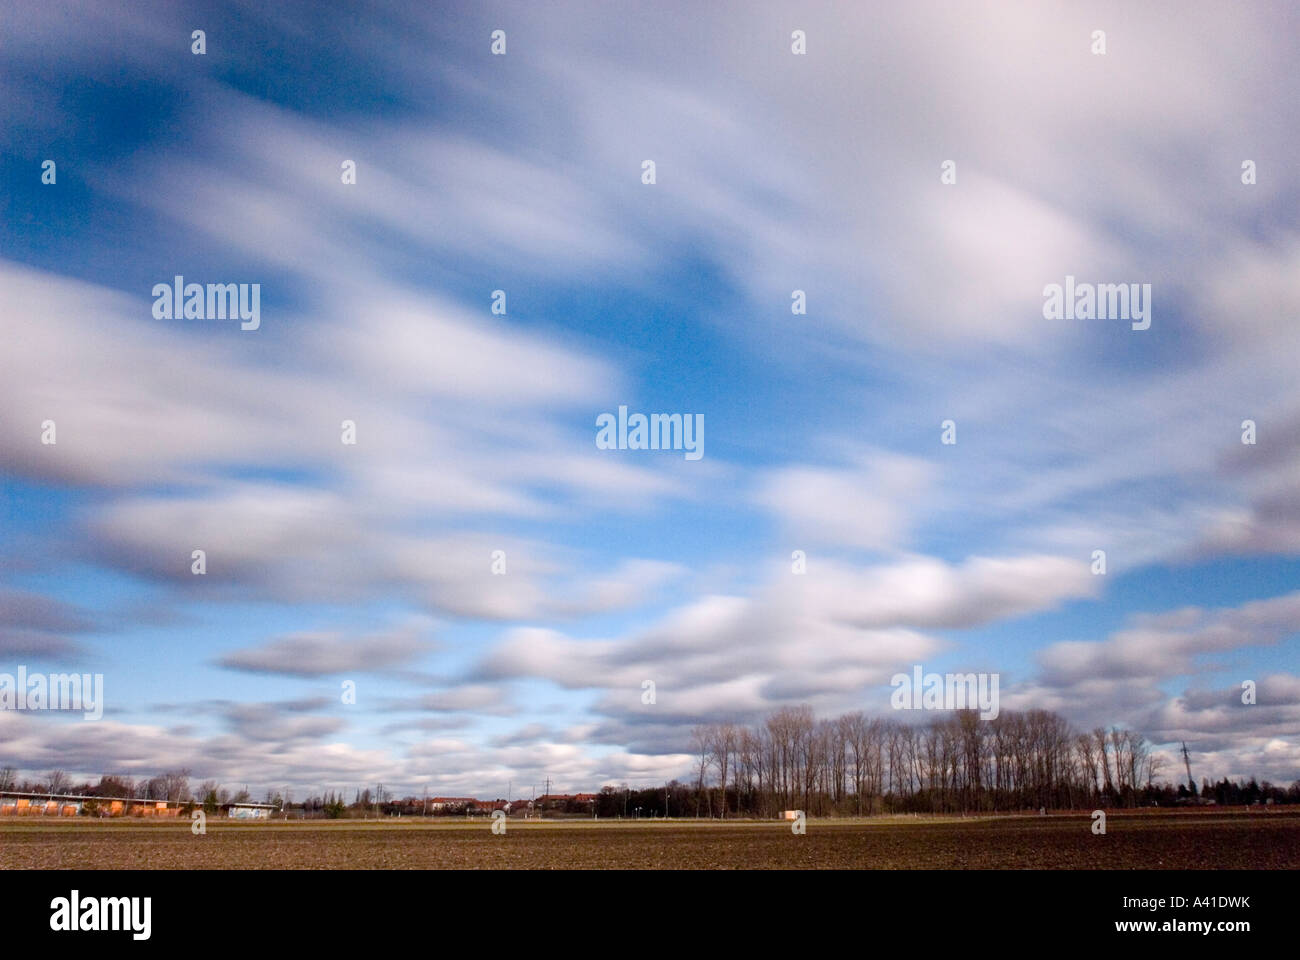 wintry landscape with field and bleak small wood and white clouds blurred while drifting near Munich Bavaria Germany - Stock Image